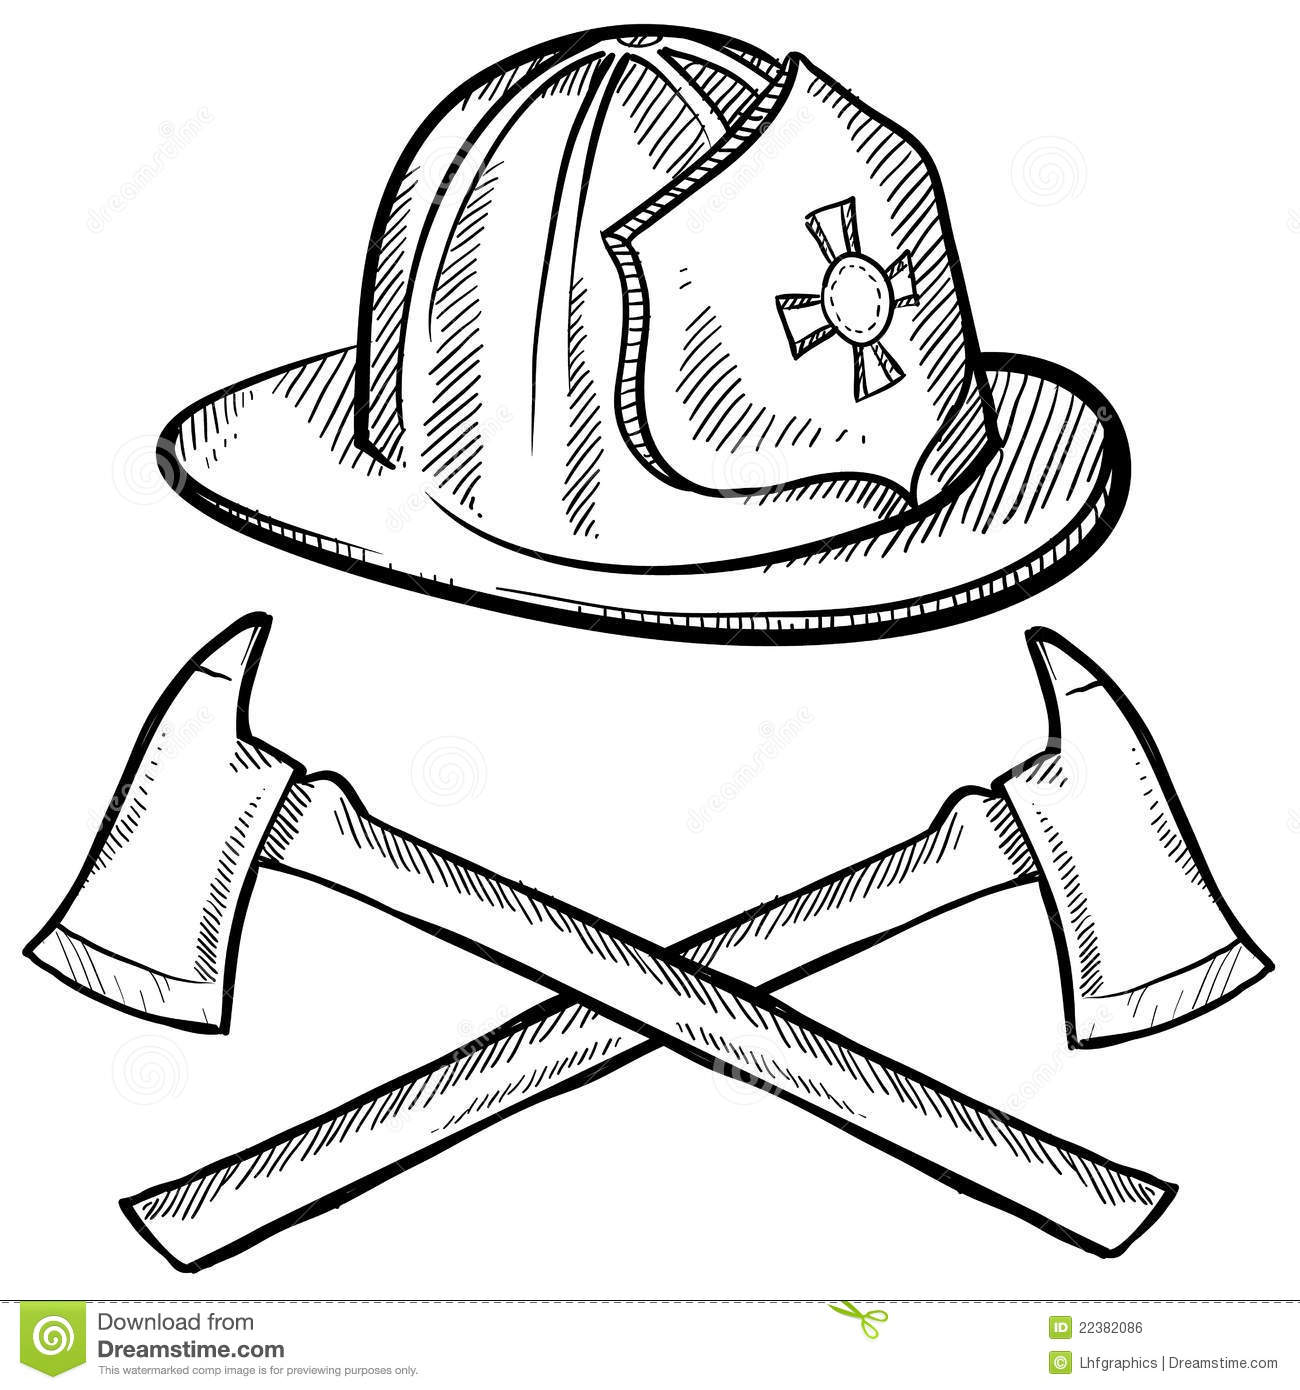 Firefighter S Objects Sketch Stock Vector Image 22382086